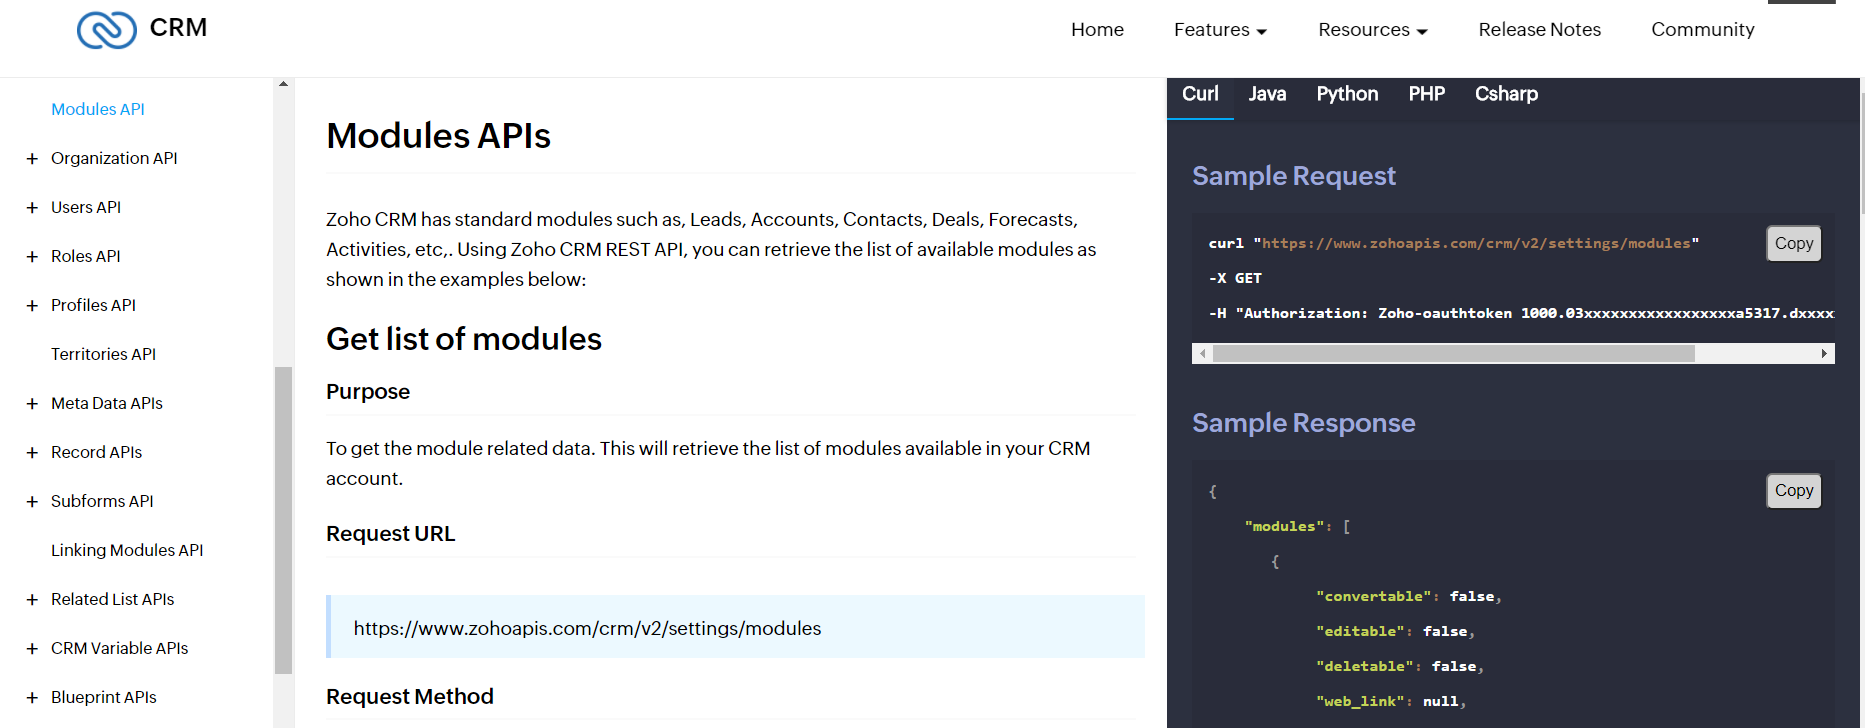 A screenshot of the setup page for APIs in a CRM.